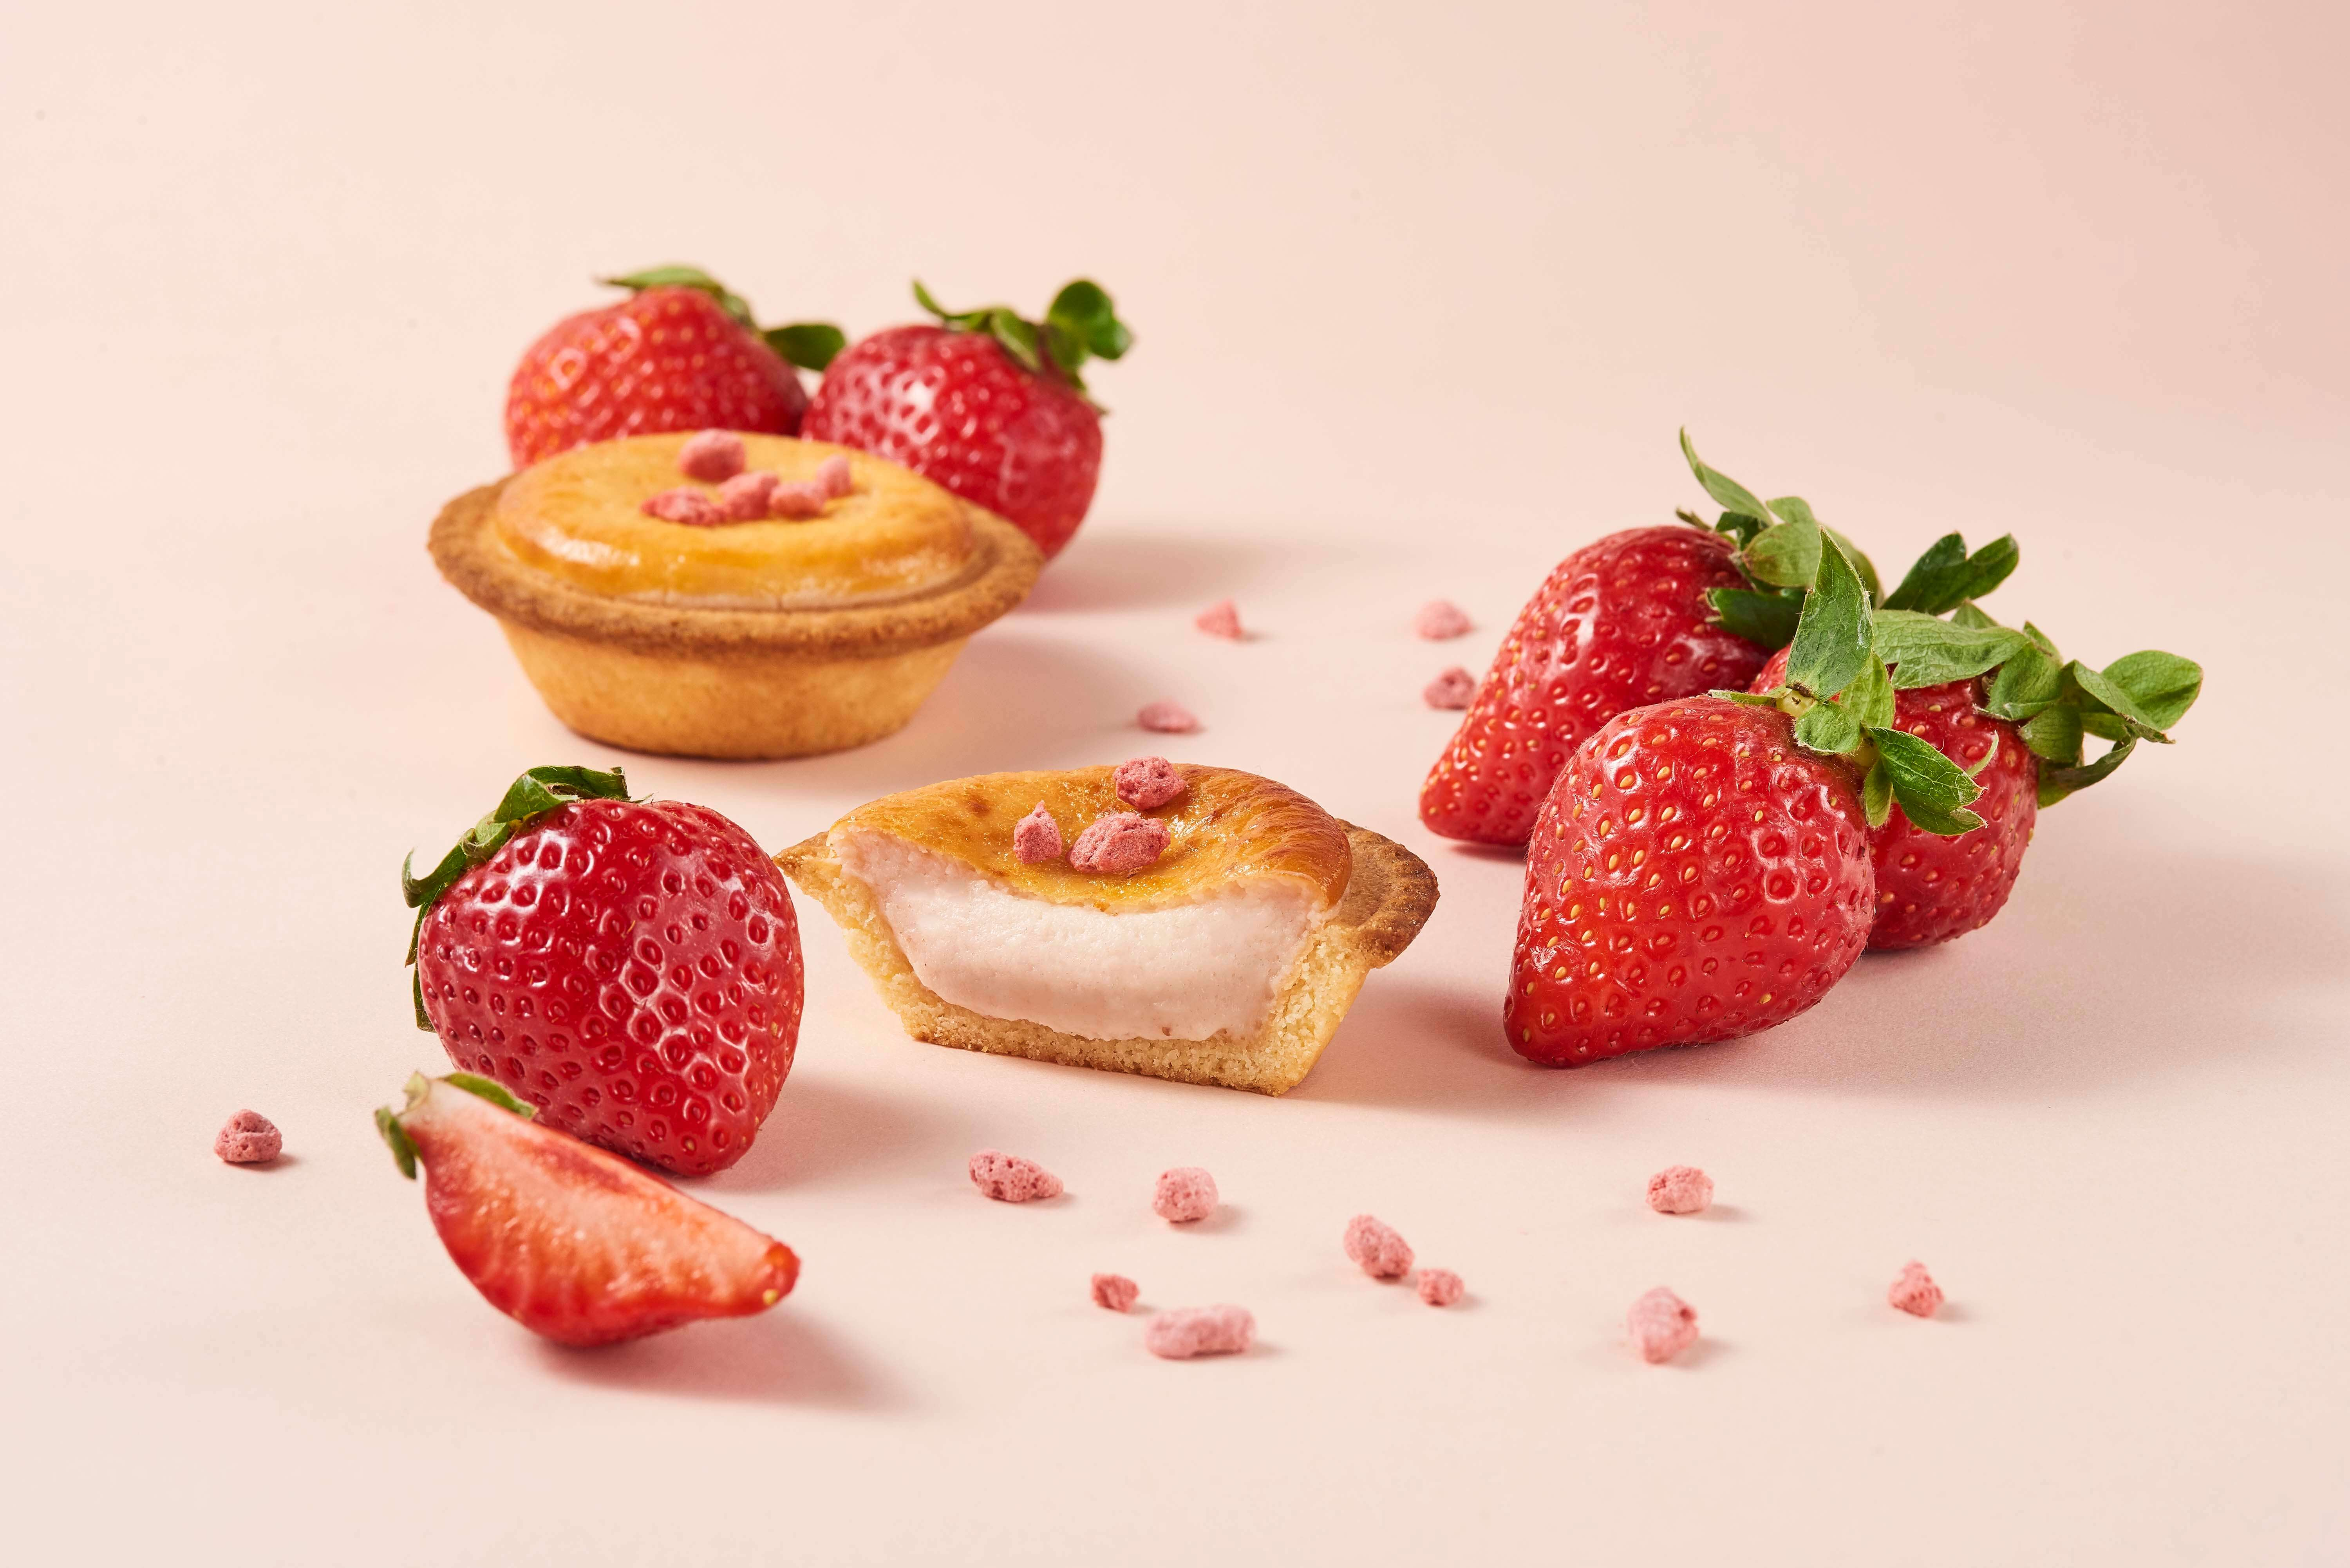 BAKE CHEESE TART いちご スイーツ strawberry sweets 6